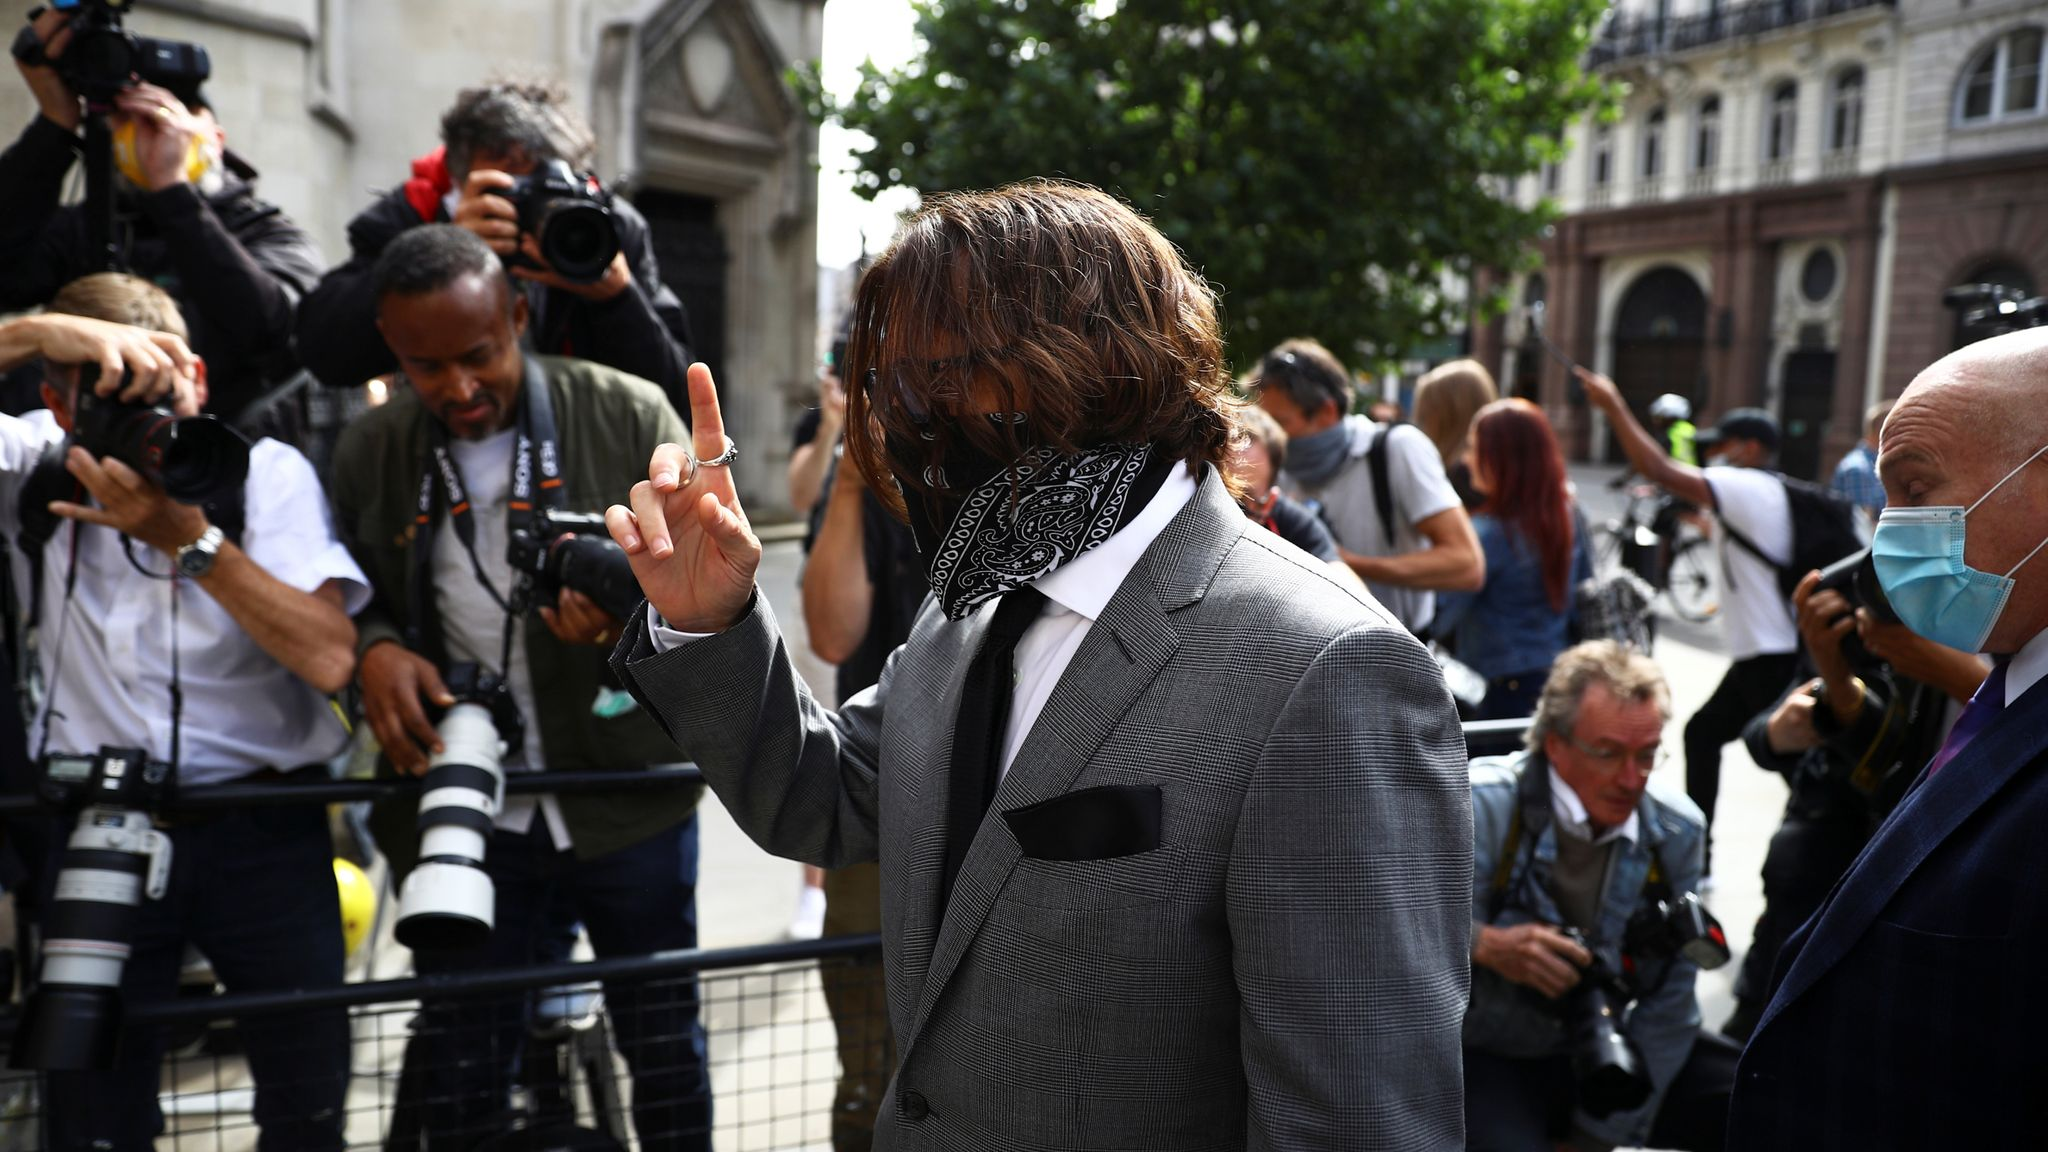 Johnny Depp arrives at the High Court on 13 July